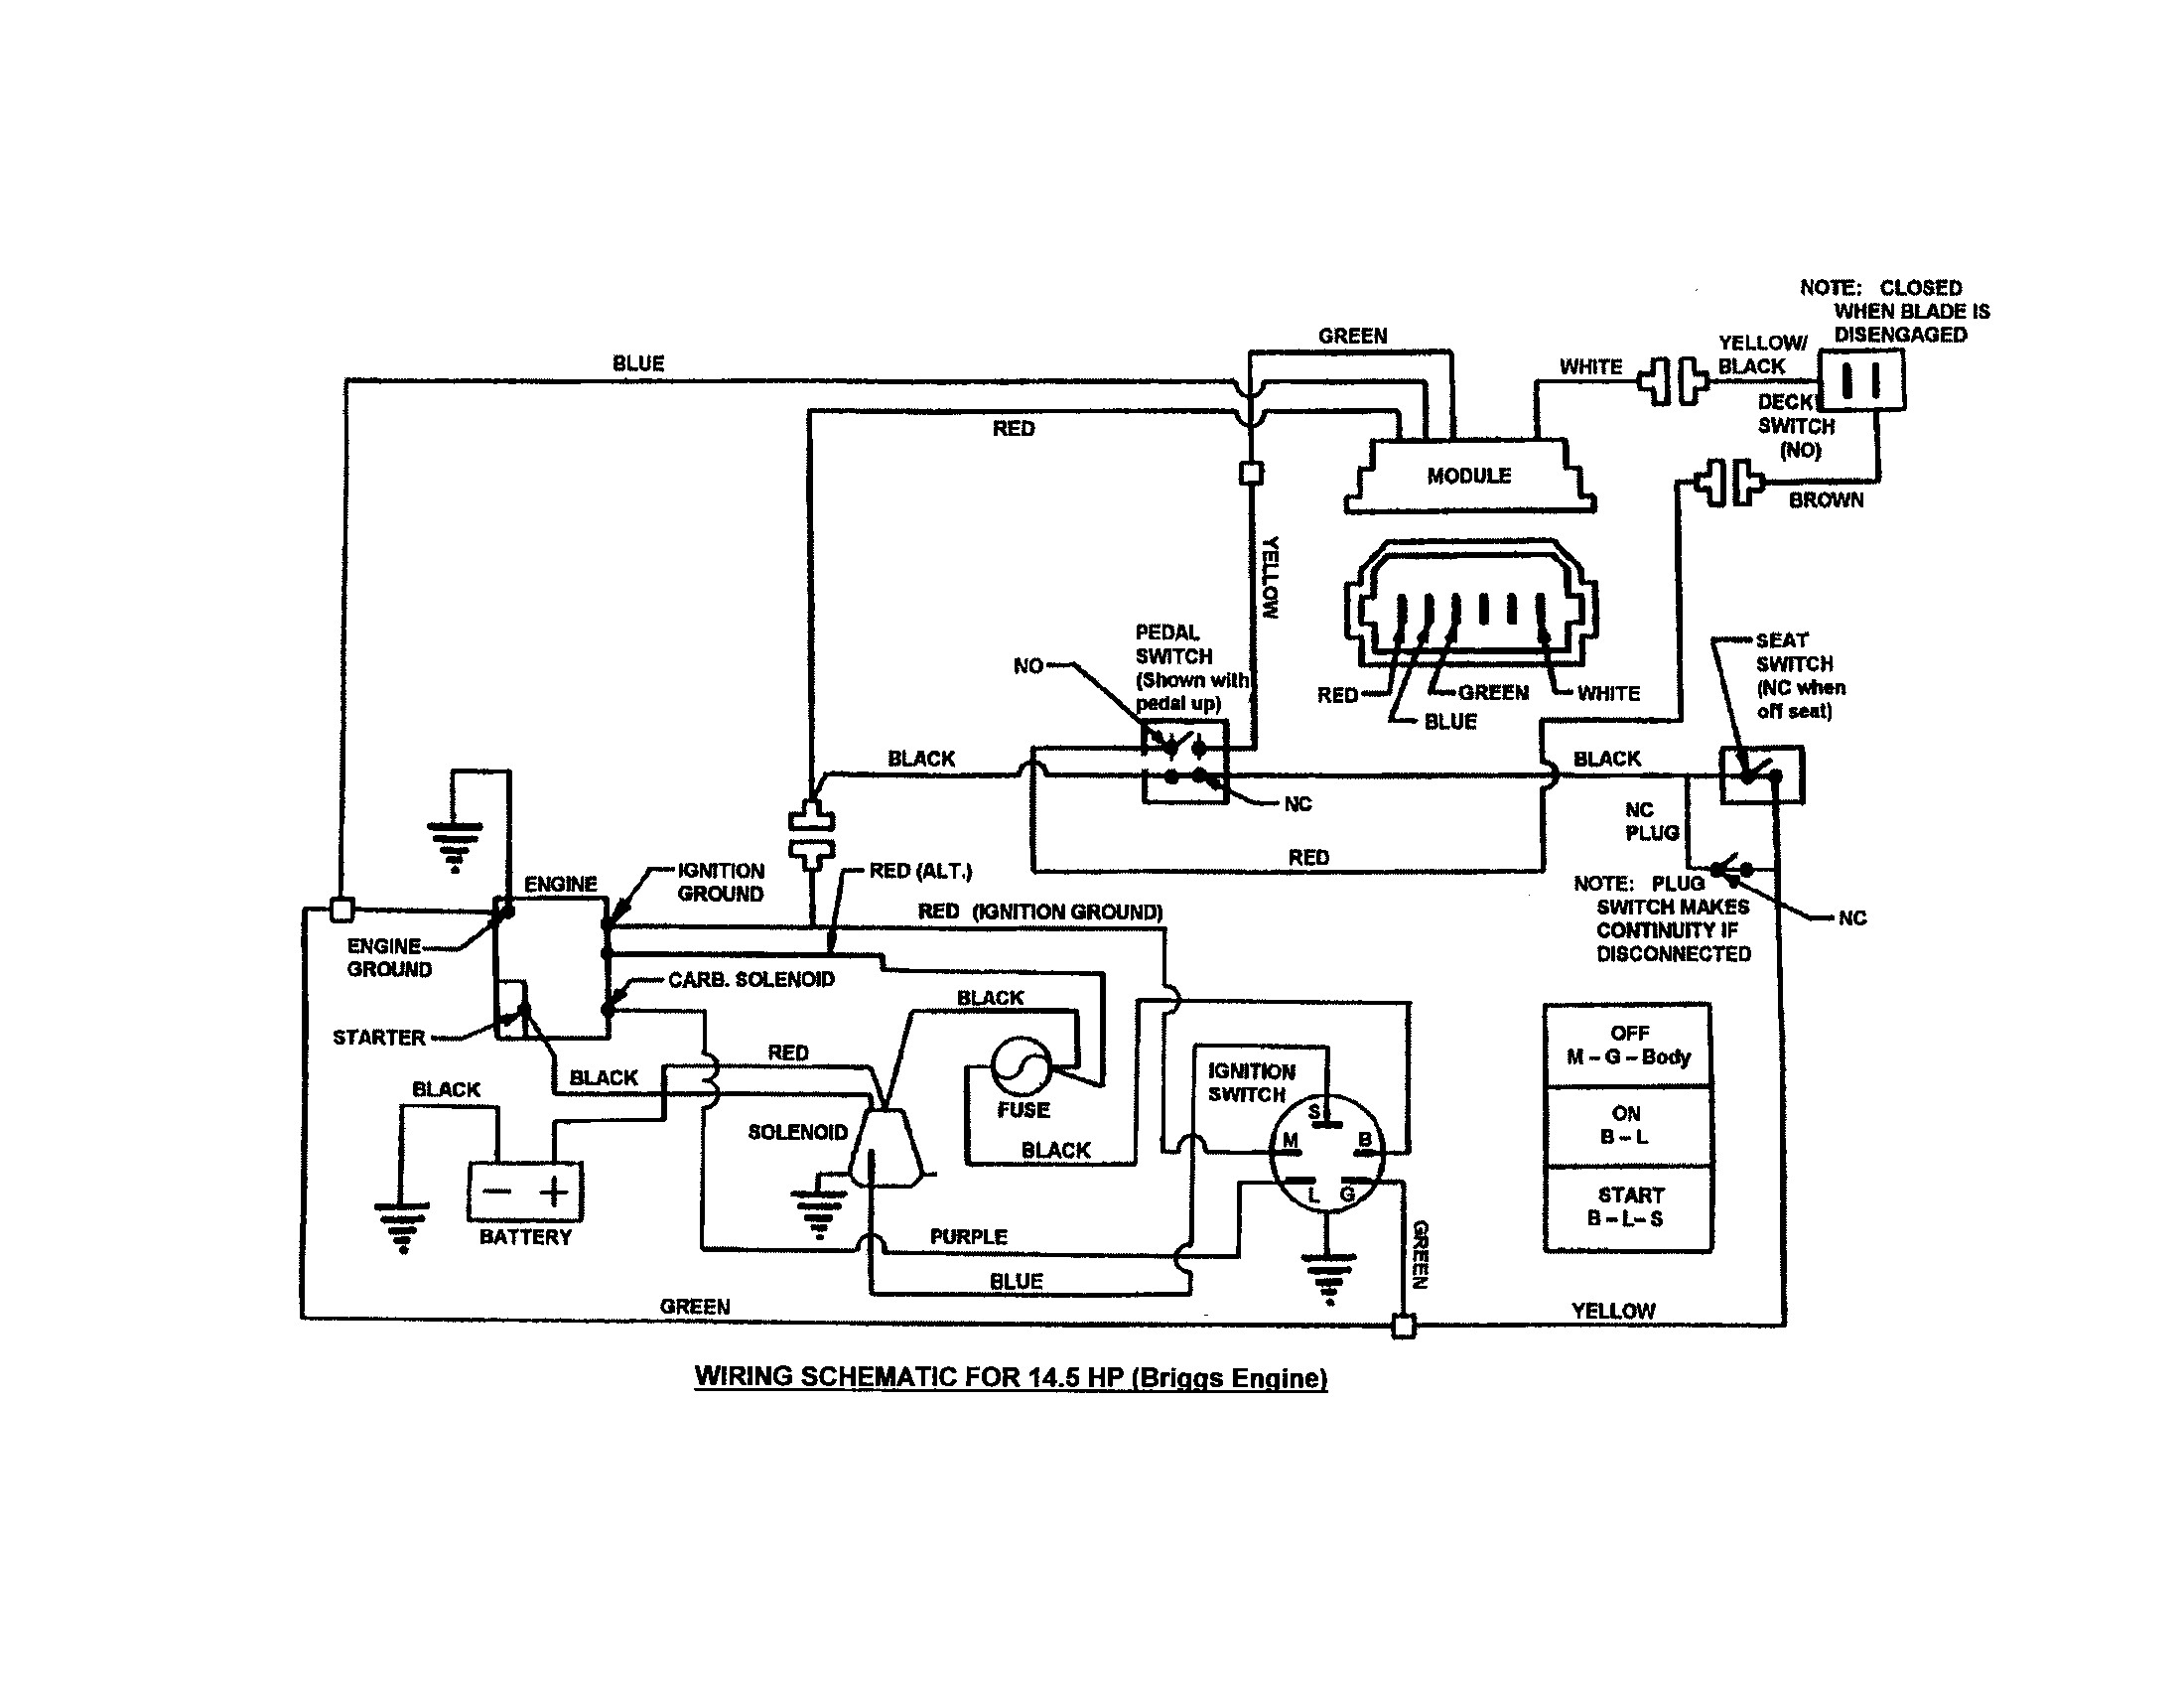 Yardman Zero Turn Wiring Diagram. Wiring. Wiring Diagram